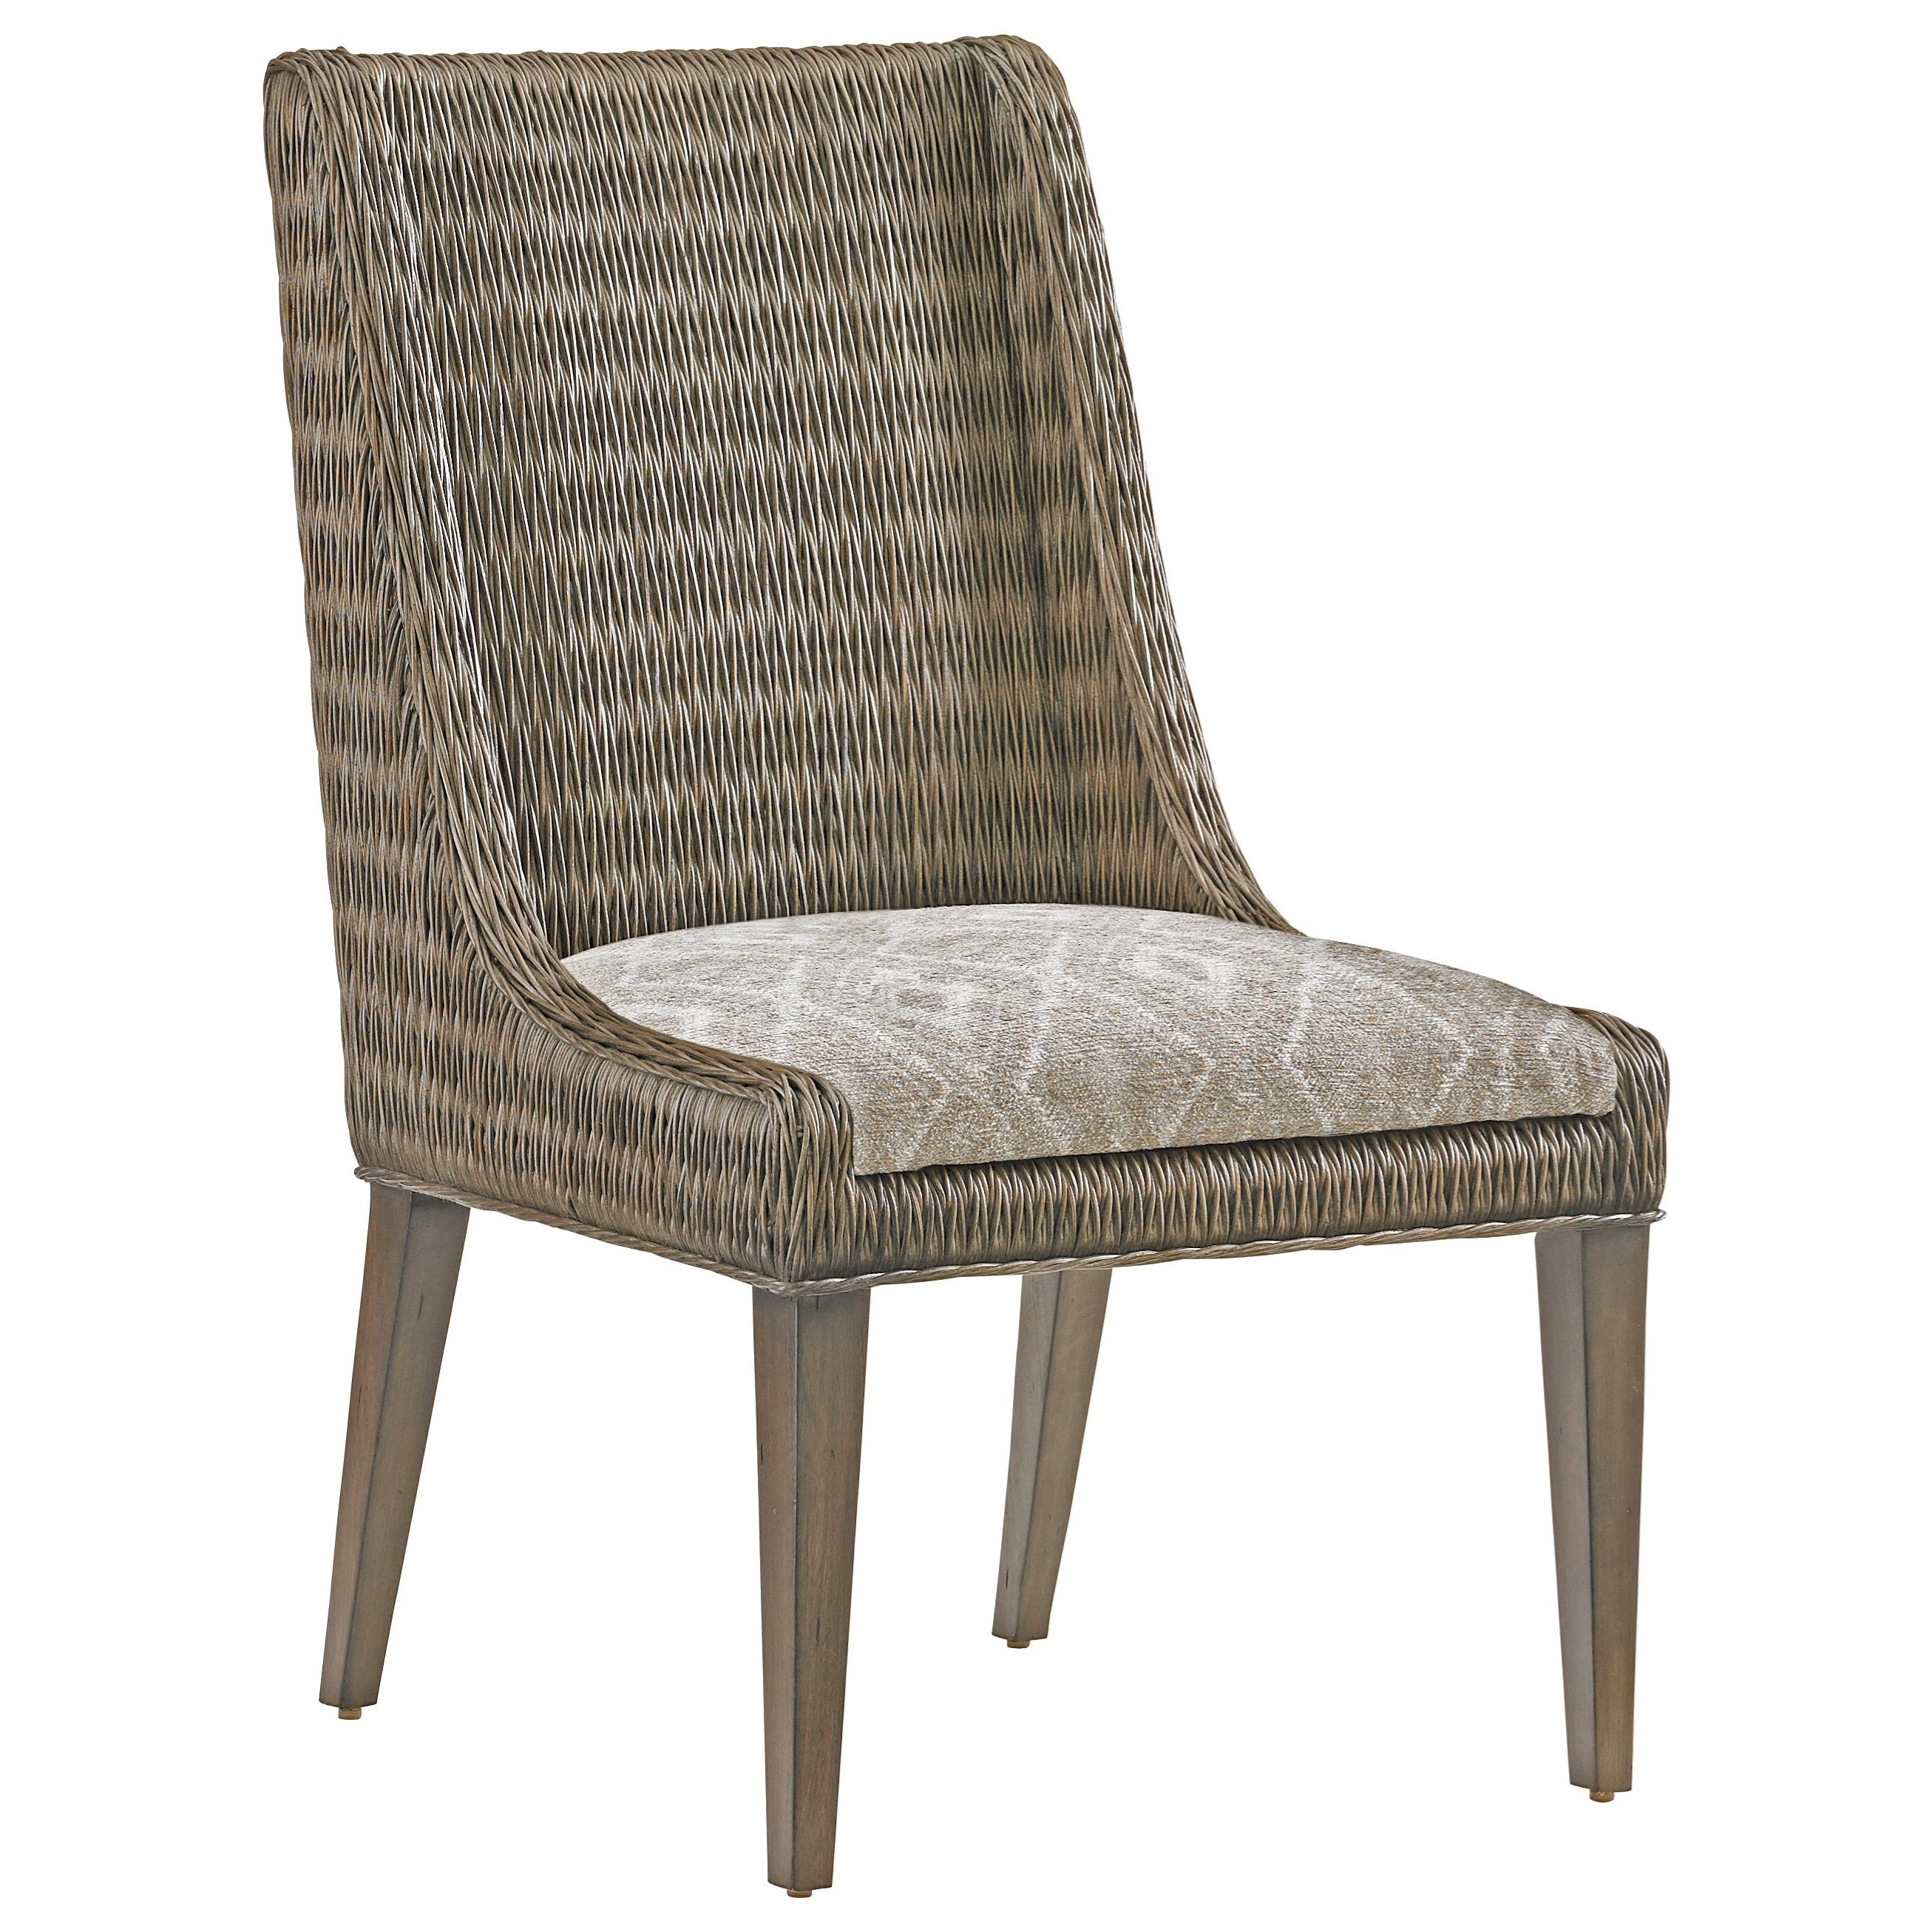 Tommy Bahama Home Cypress Point Brandon Woven Rattan Side